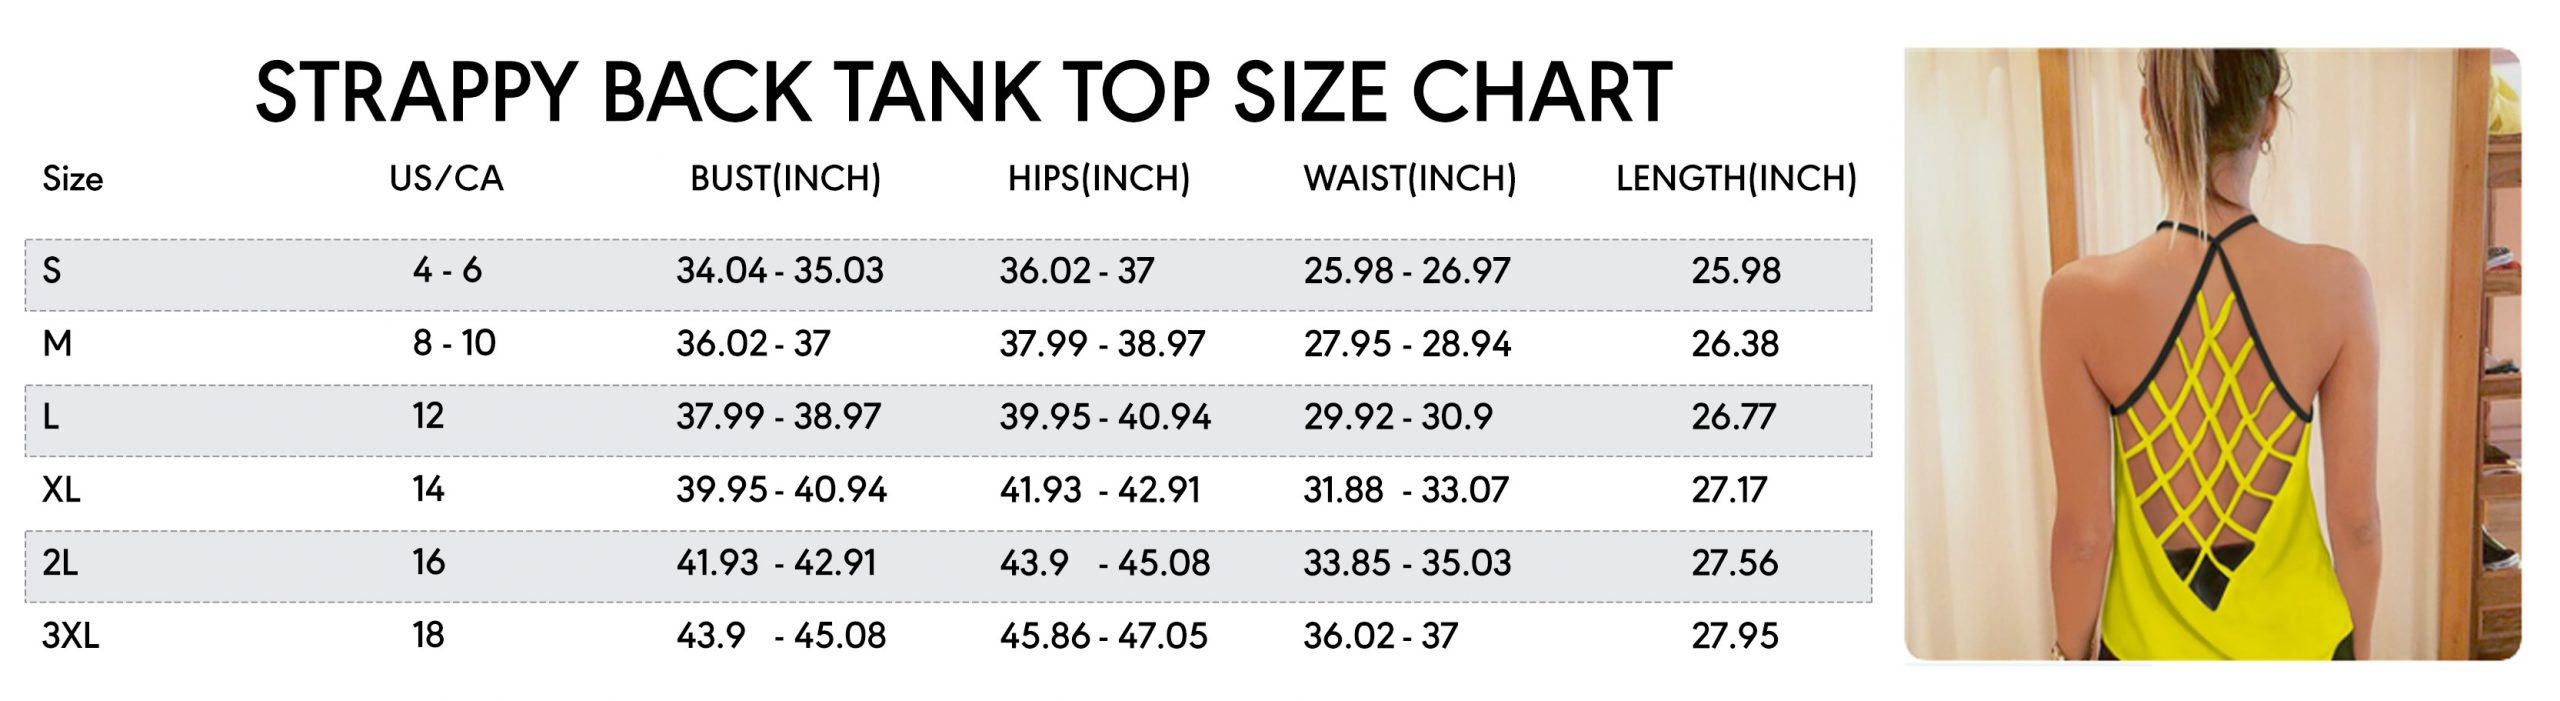 strappy back tank top size chart